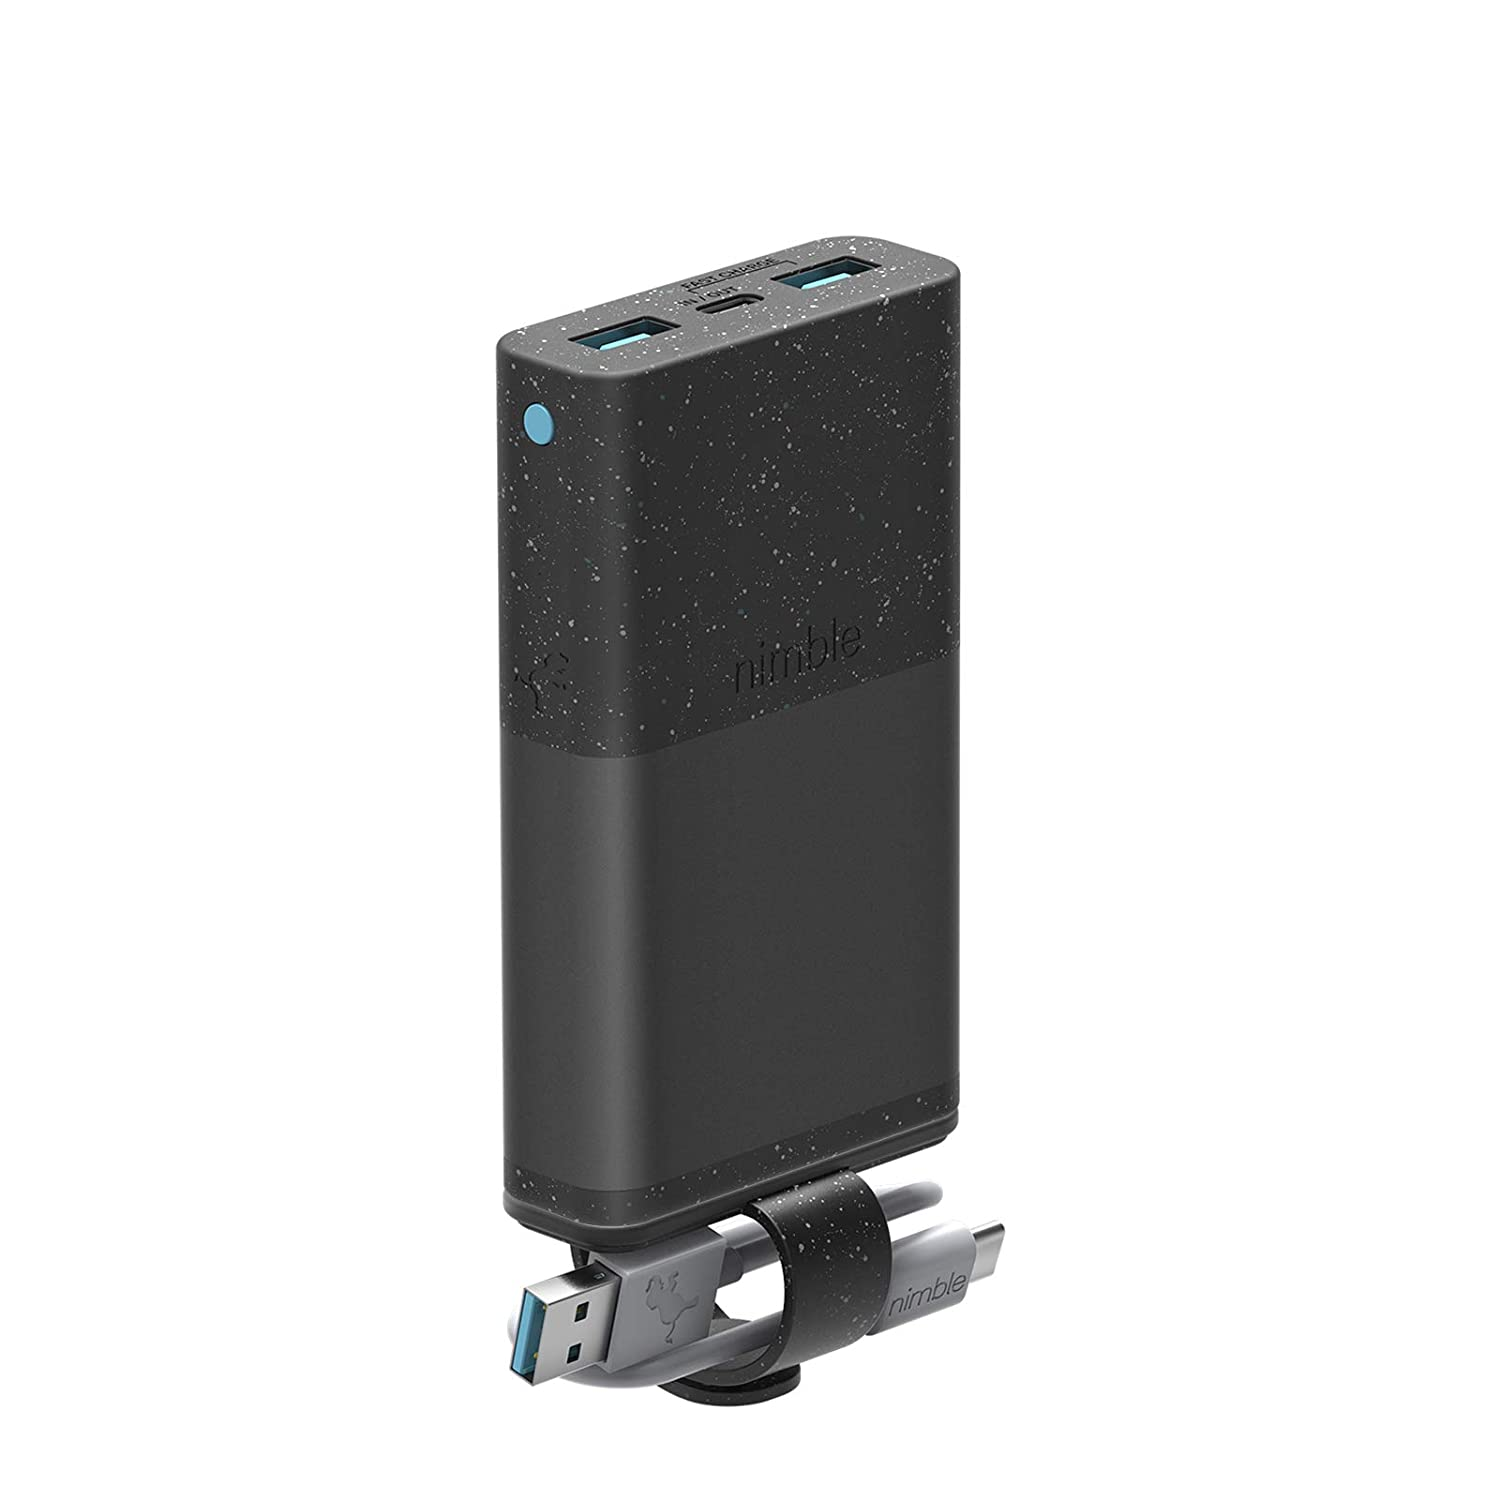 Nimble Eco-Friendly 3-Day Fast Portable Charger, 10,000 mAh QC 3.0 & 18W PD Fast Charge USB-C Compatible with Apple, Samsung, USB-Enabled Devices (Recycled Aluminum, Sustainable Bioplastics) NB-PC-10K-PD-BLK